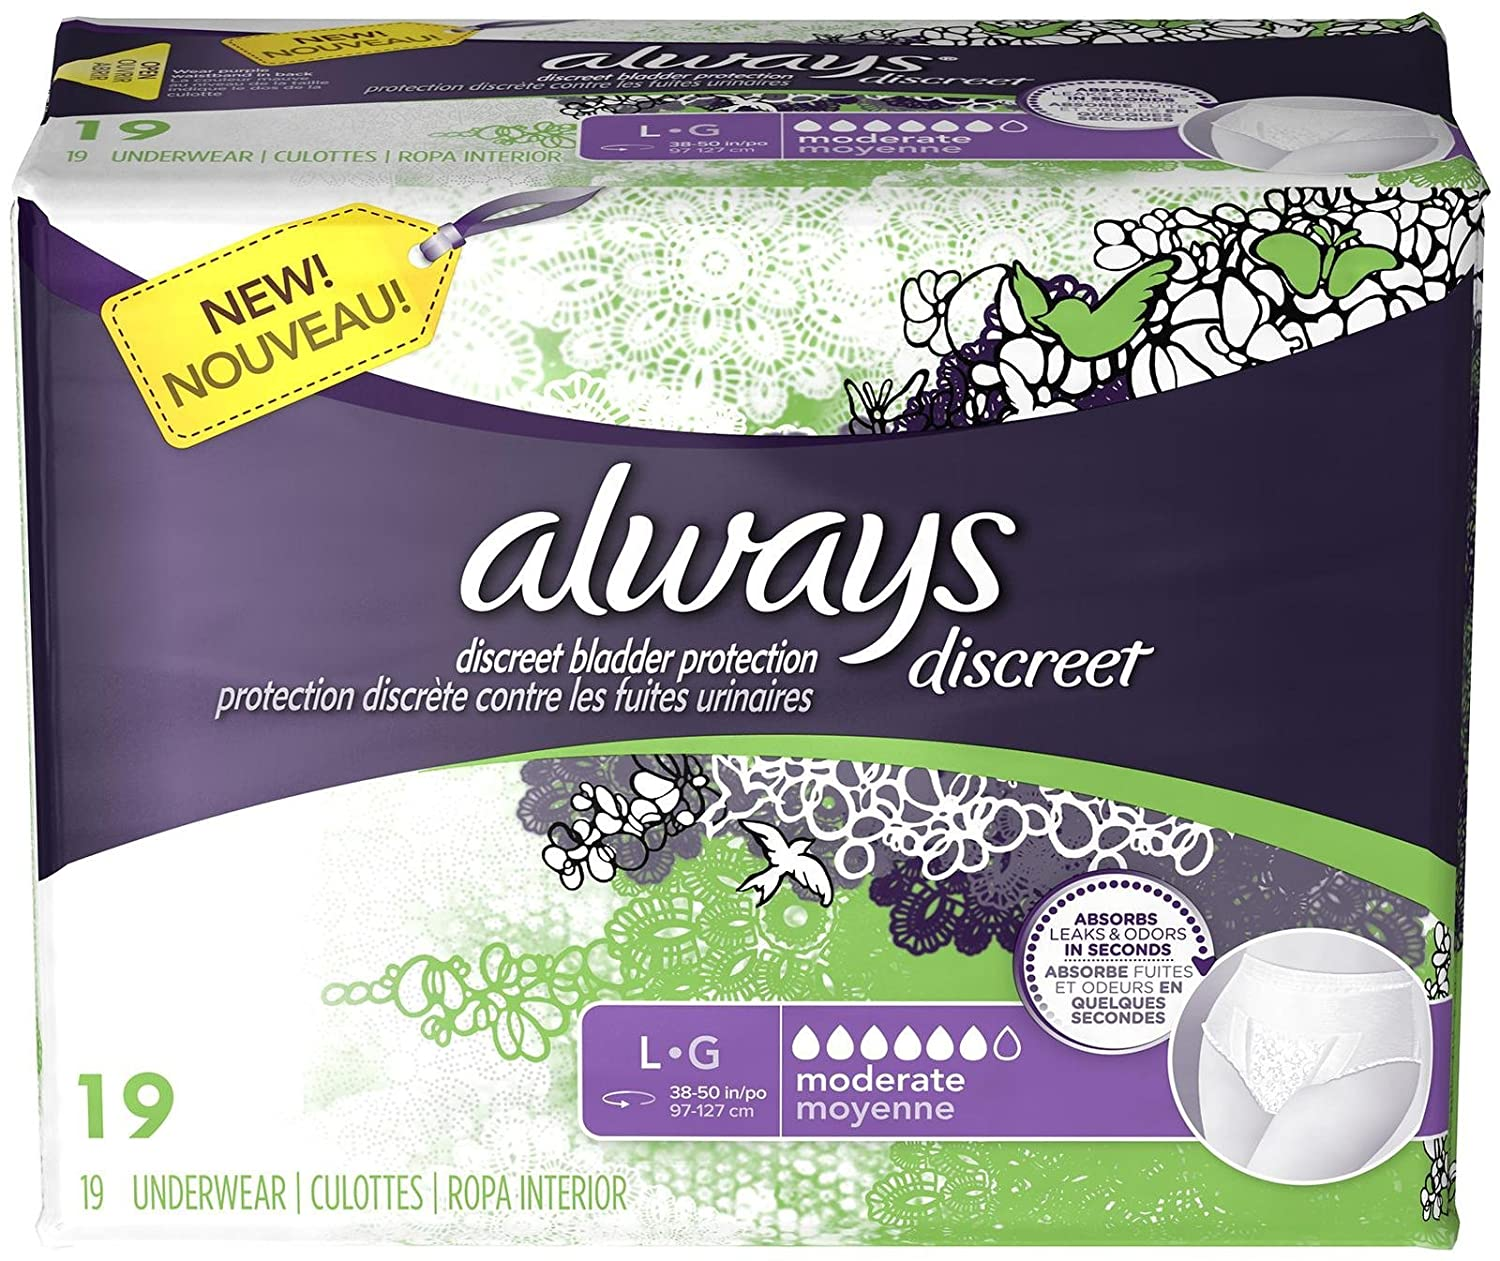 Amazon.com: Always Discreet Incontinence Underwear, Moderate Absorbency for Women, Large (19 ct): Health & Personal Care